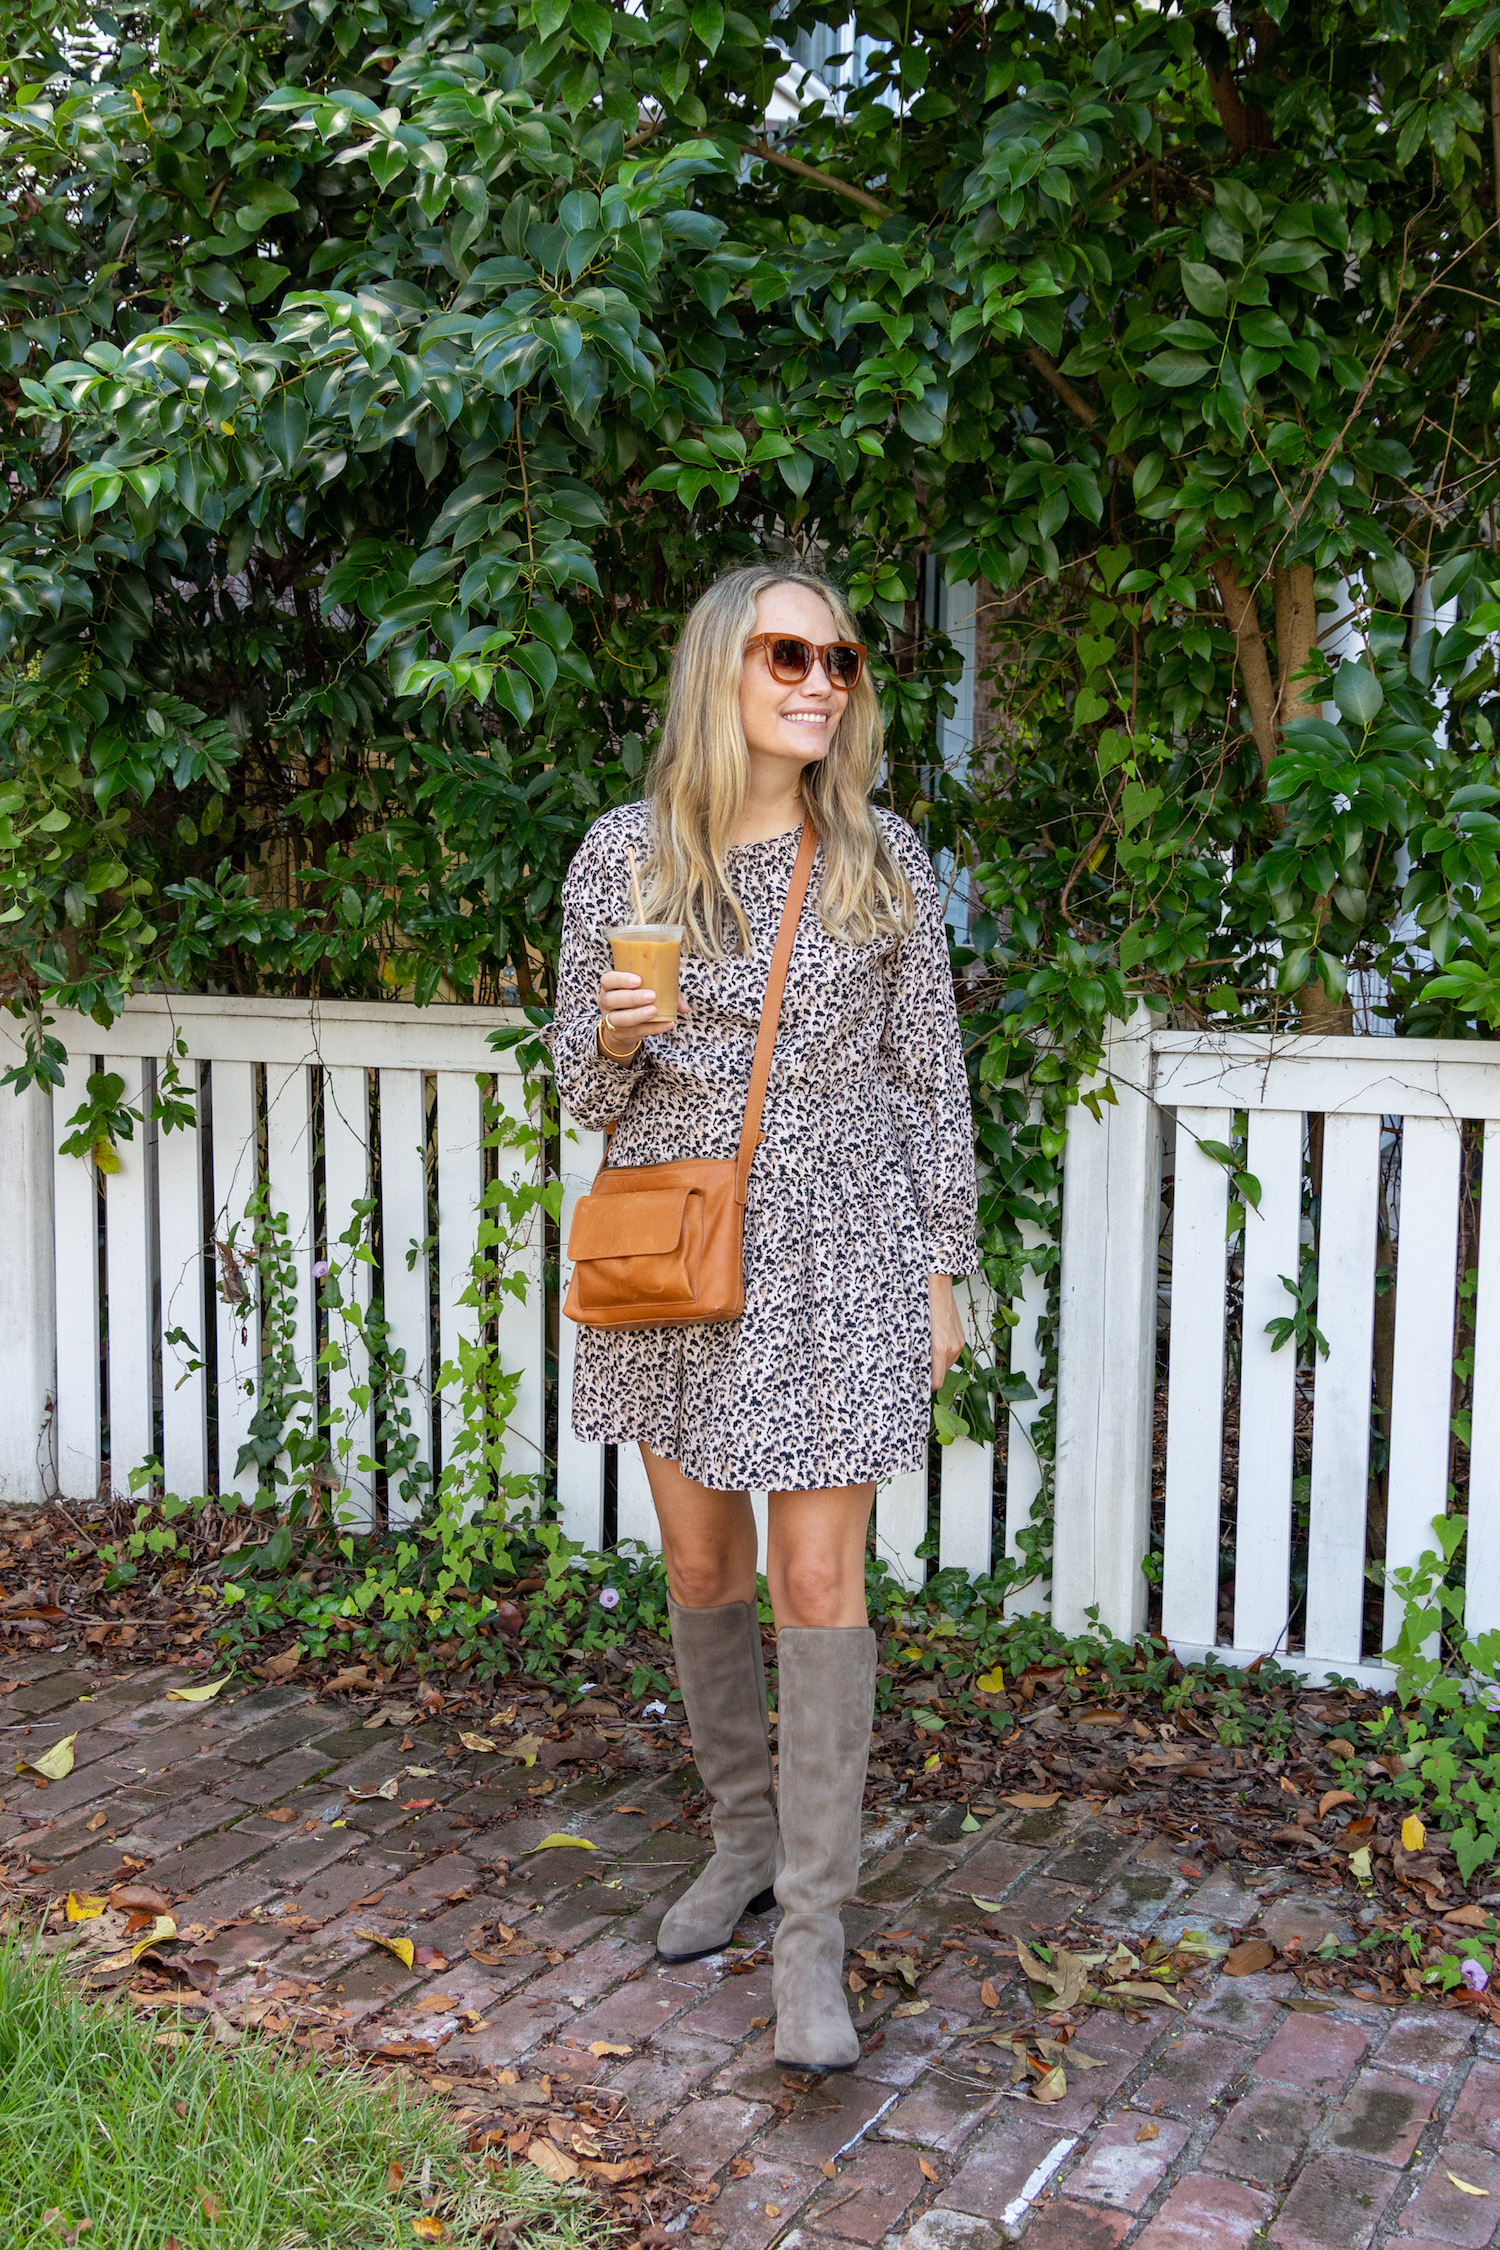 Sarah Flint Perfect Stretch Boot review